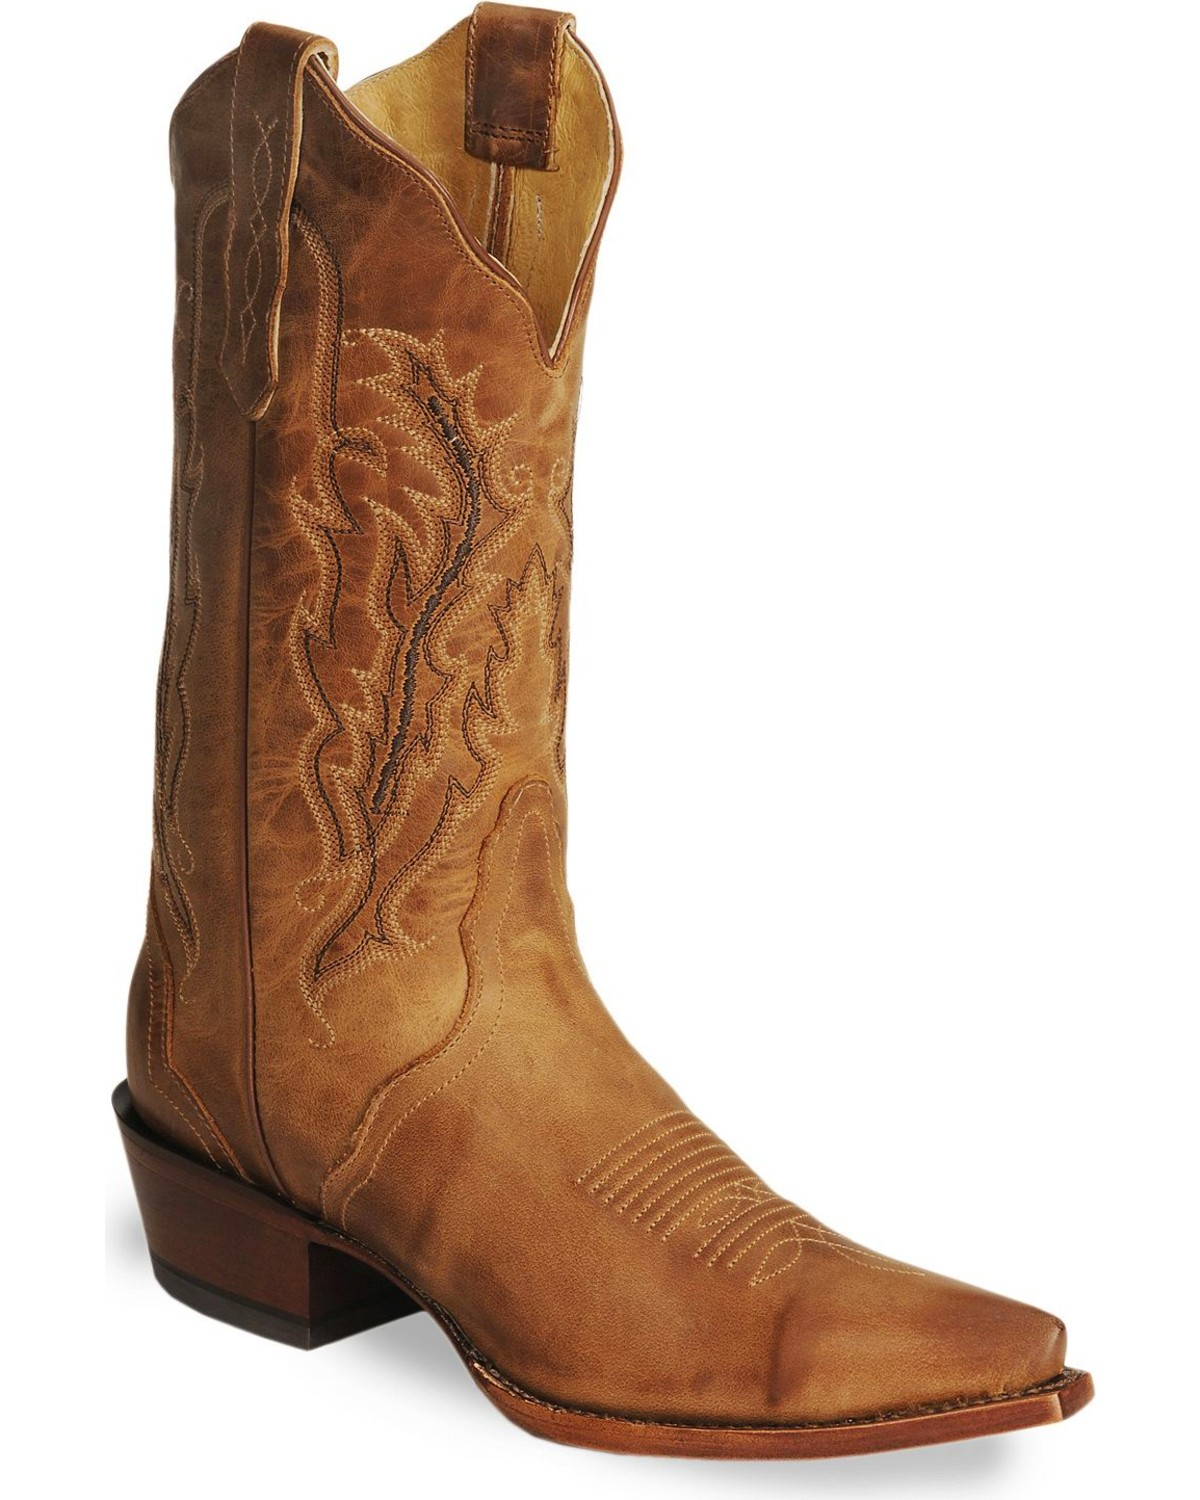 Nocona Women's Fashion Western Boots